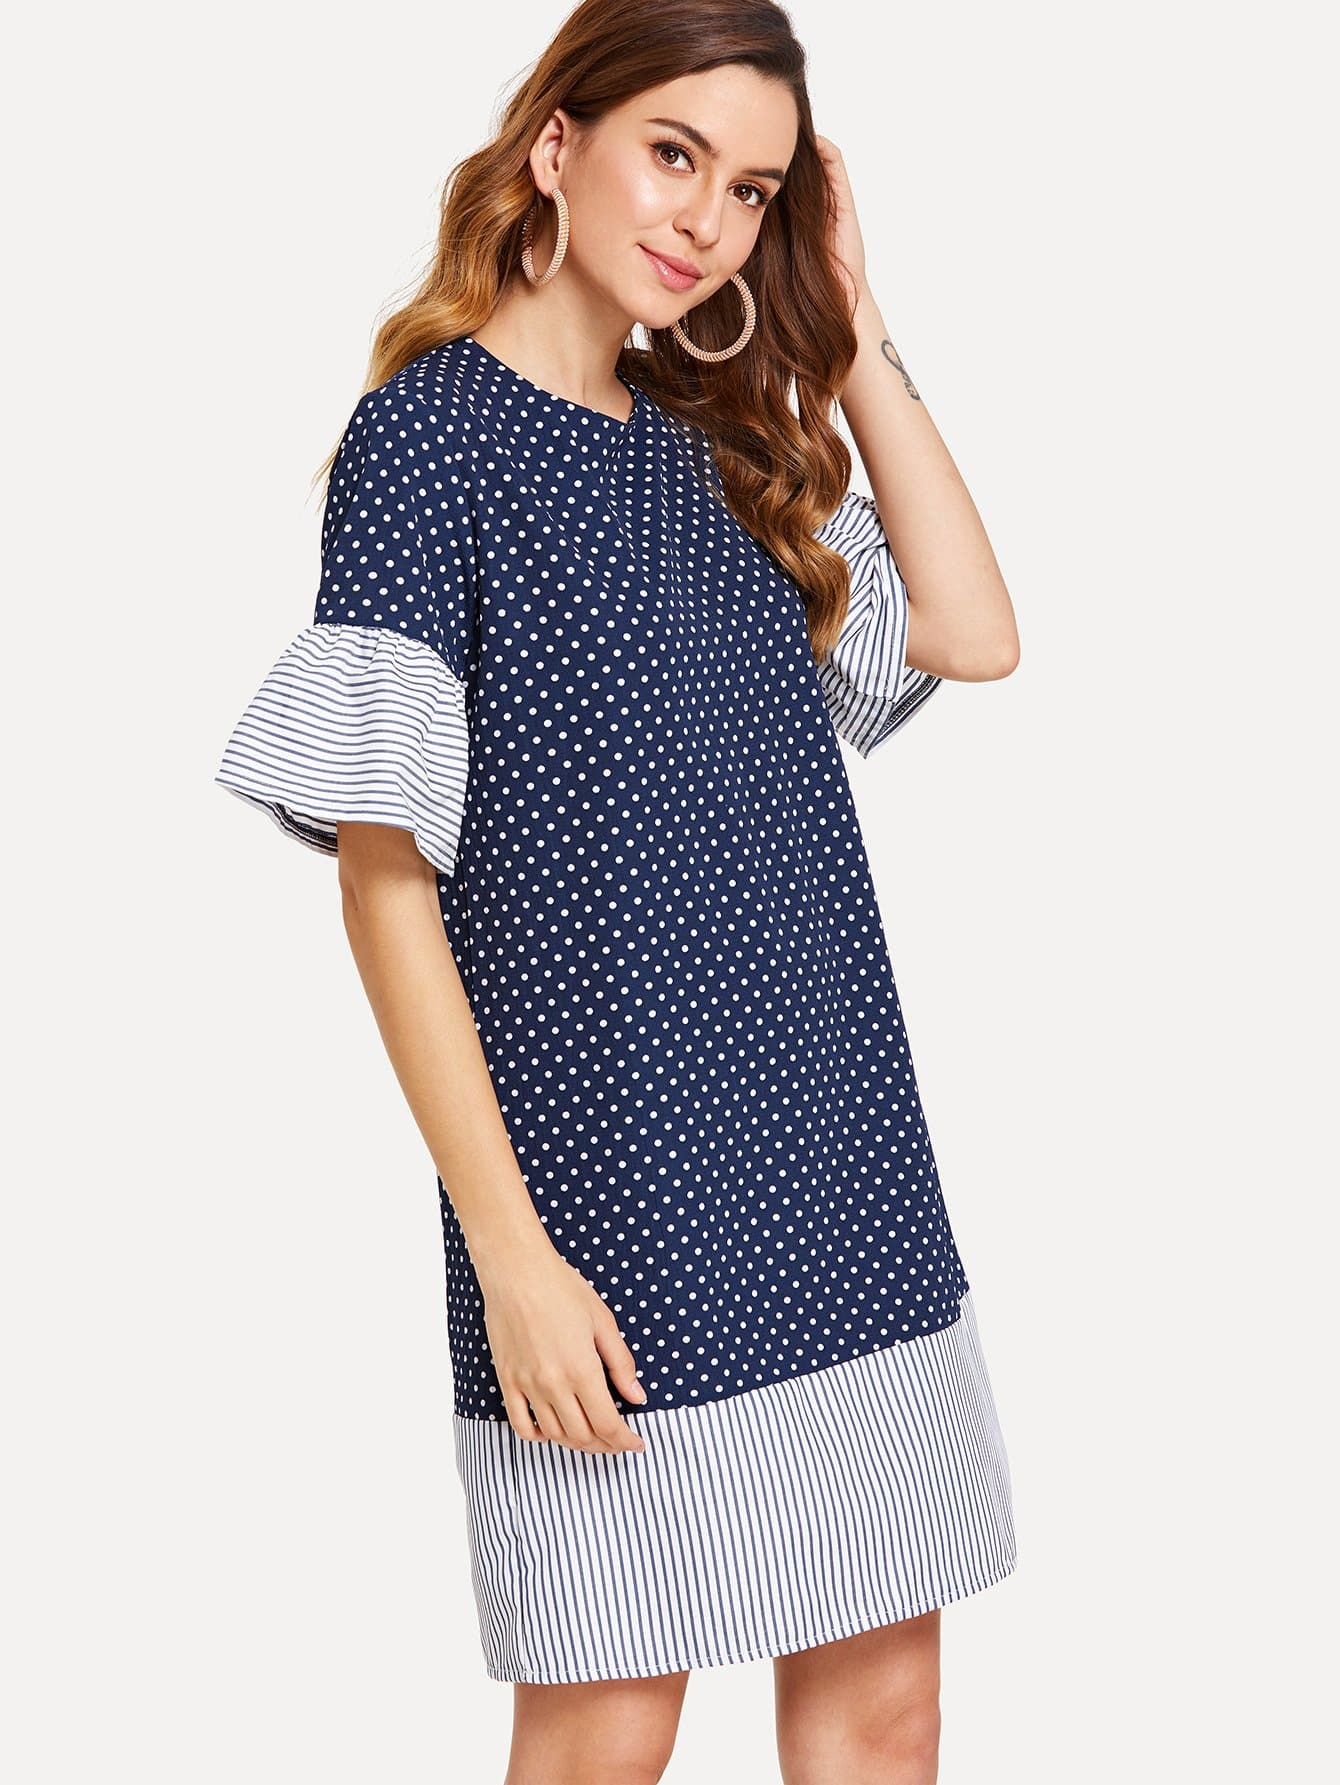 Polka Dot Contrast Striped Dress polka dot slit hem contrast dress